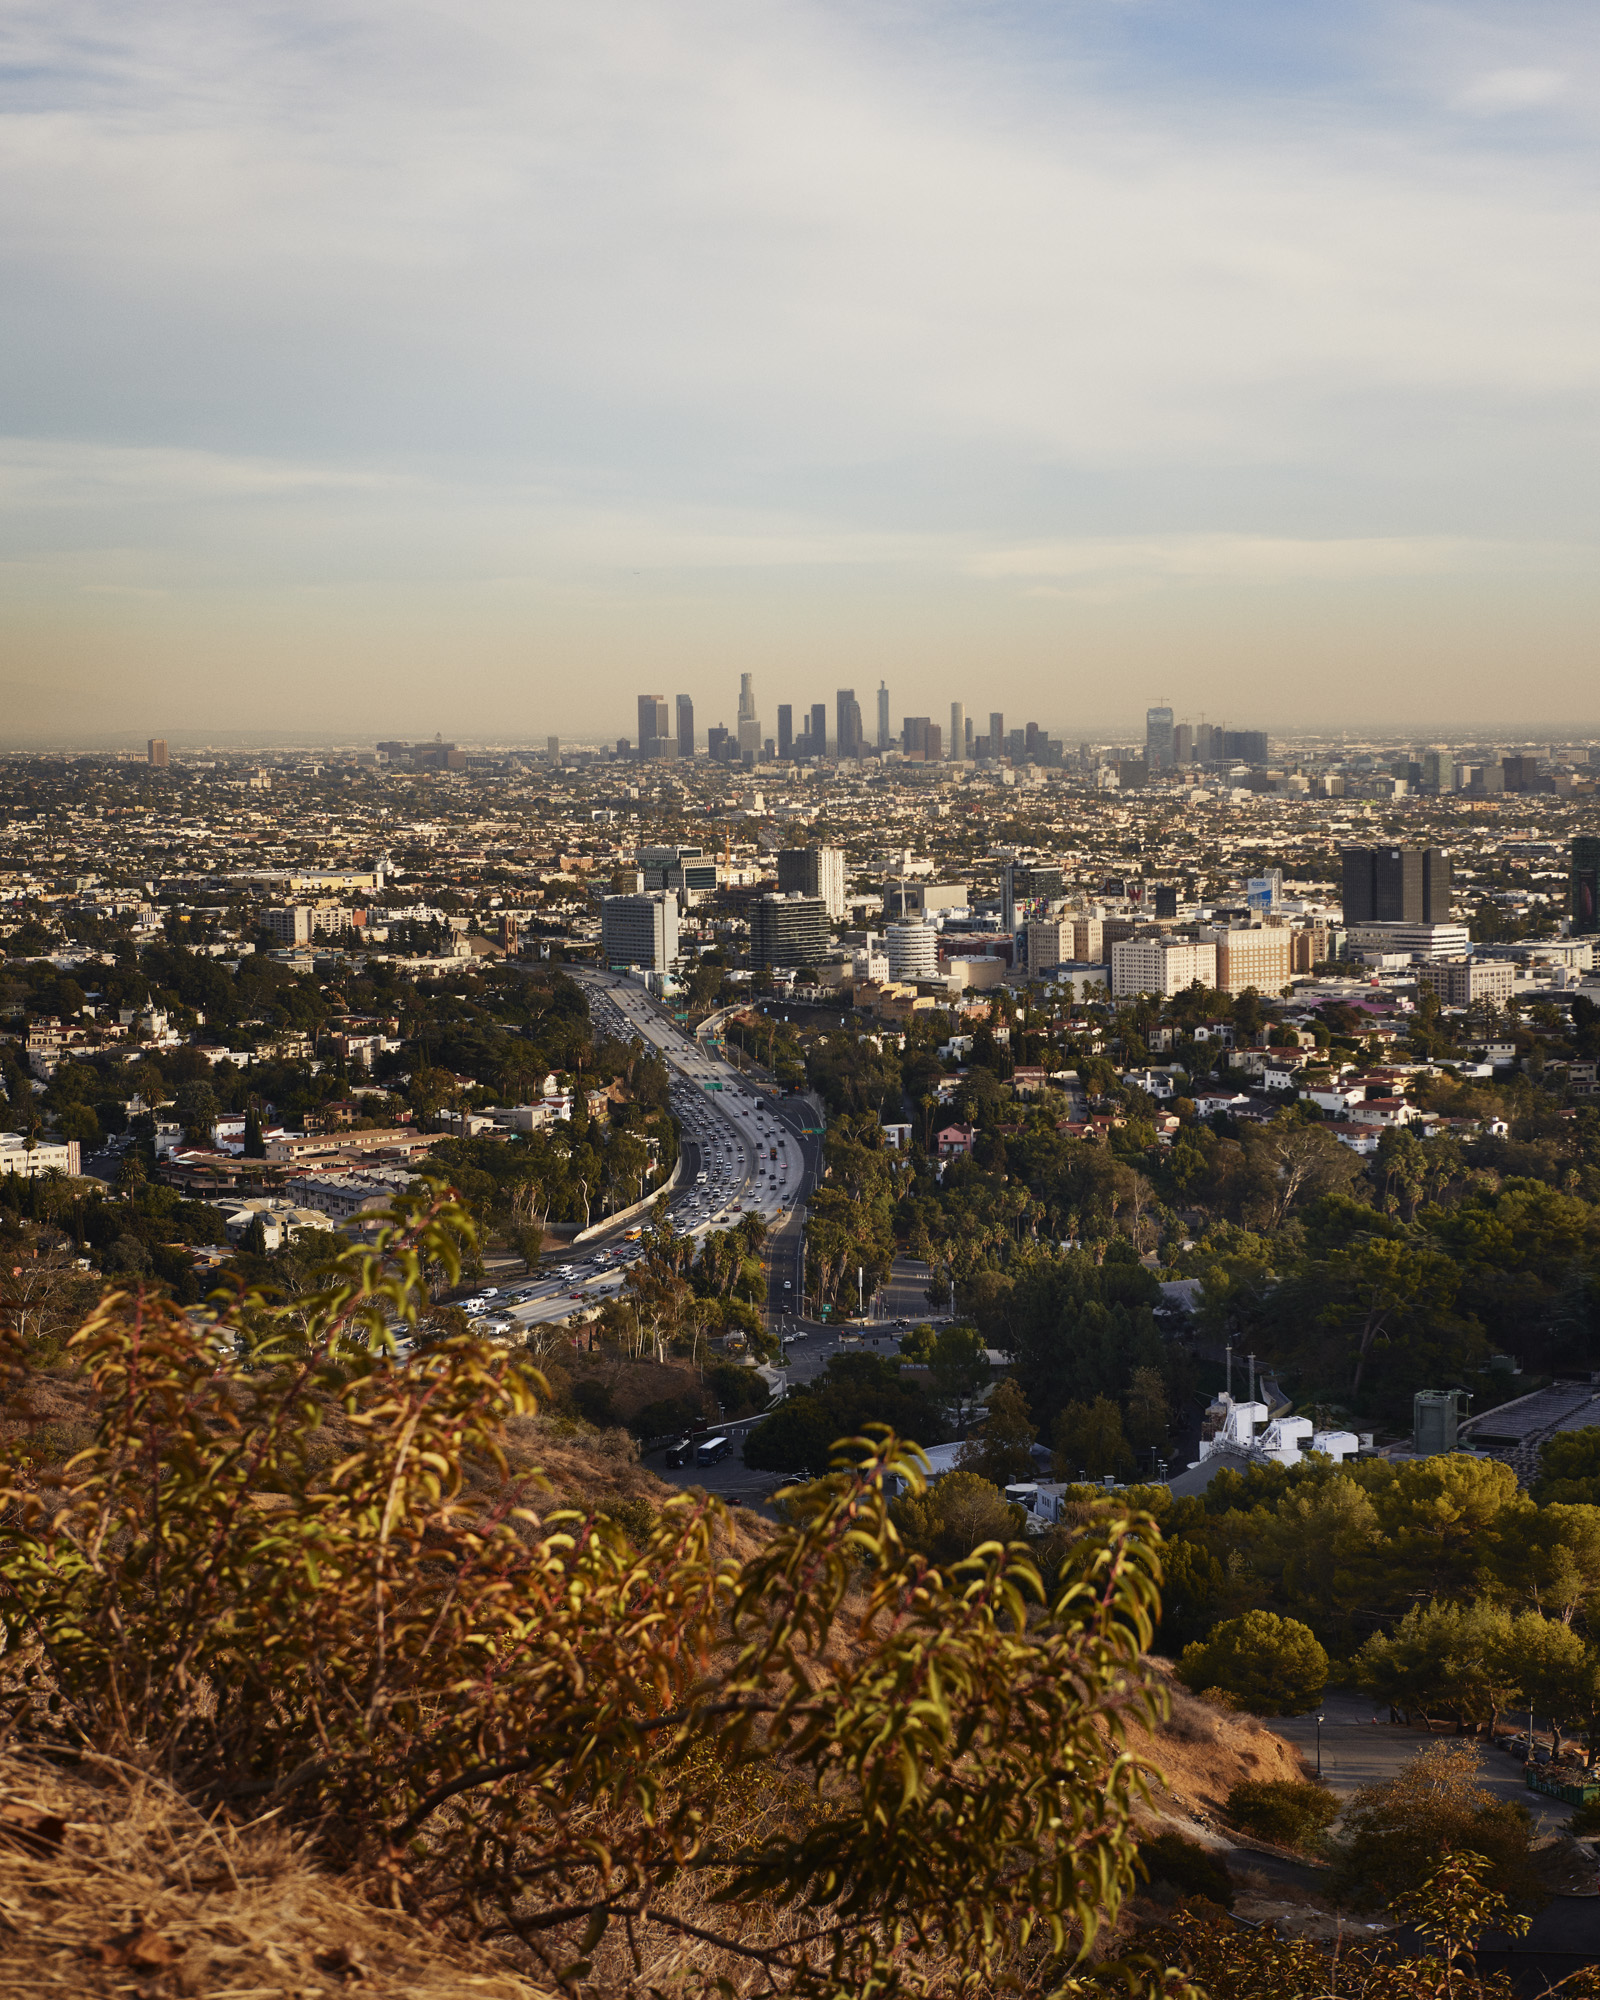 Our daily hike in North Hollywood took us to this view.